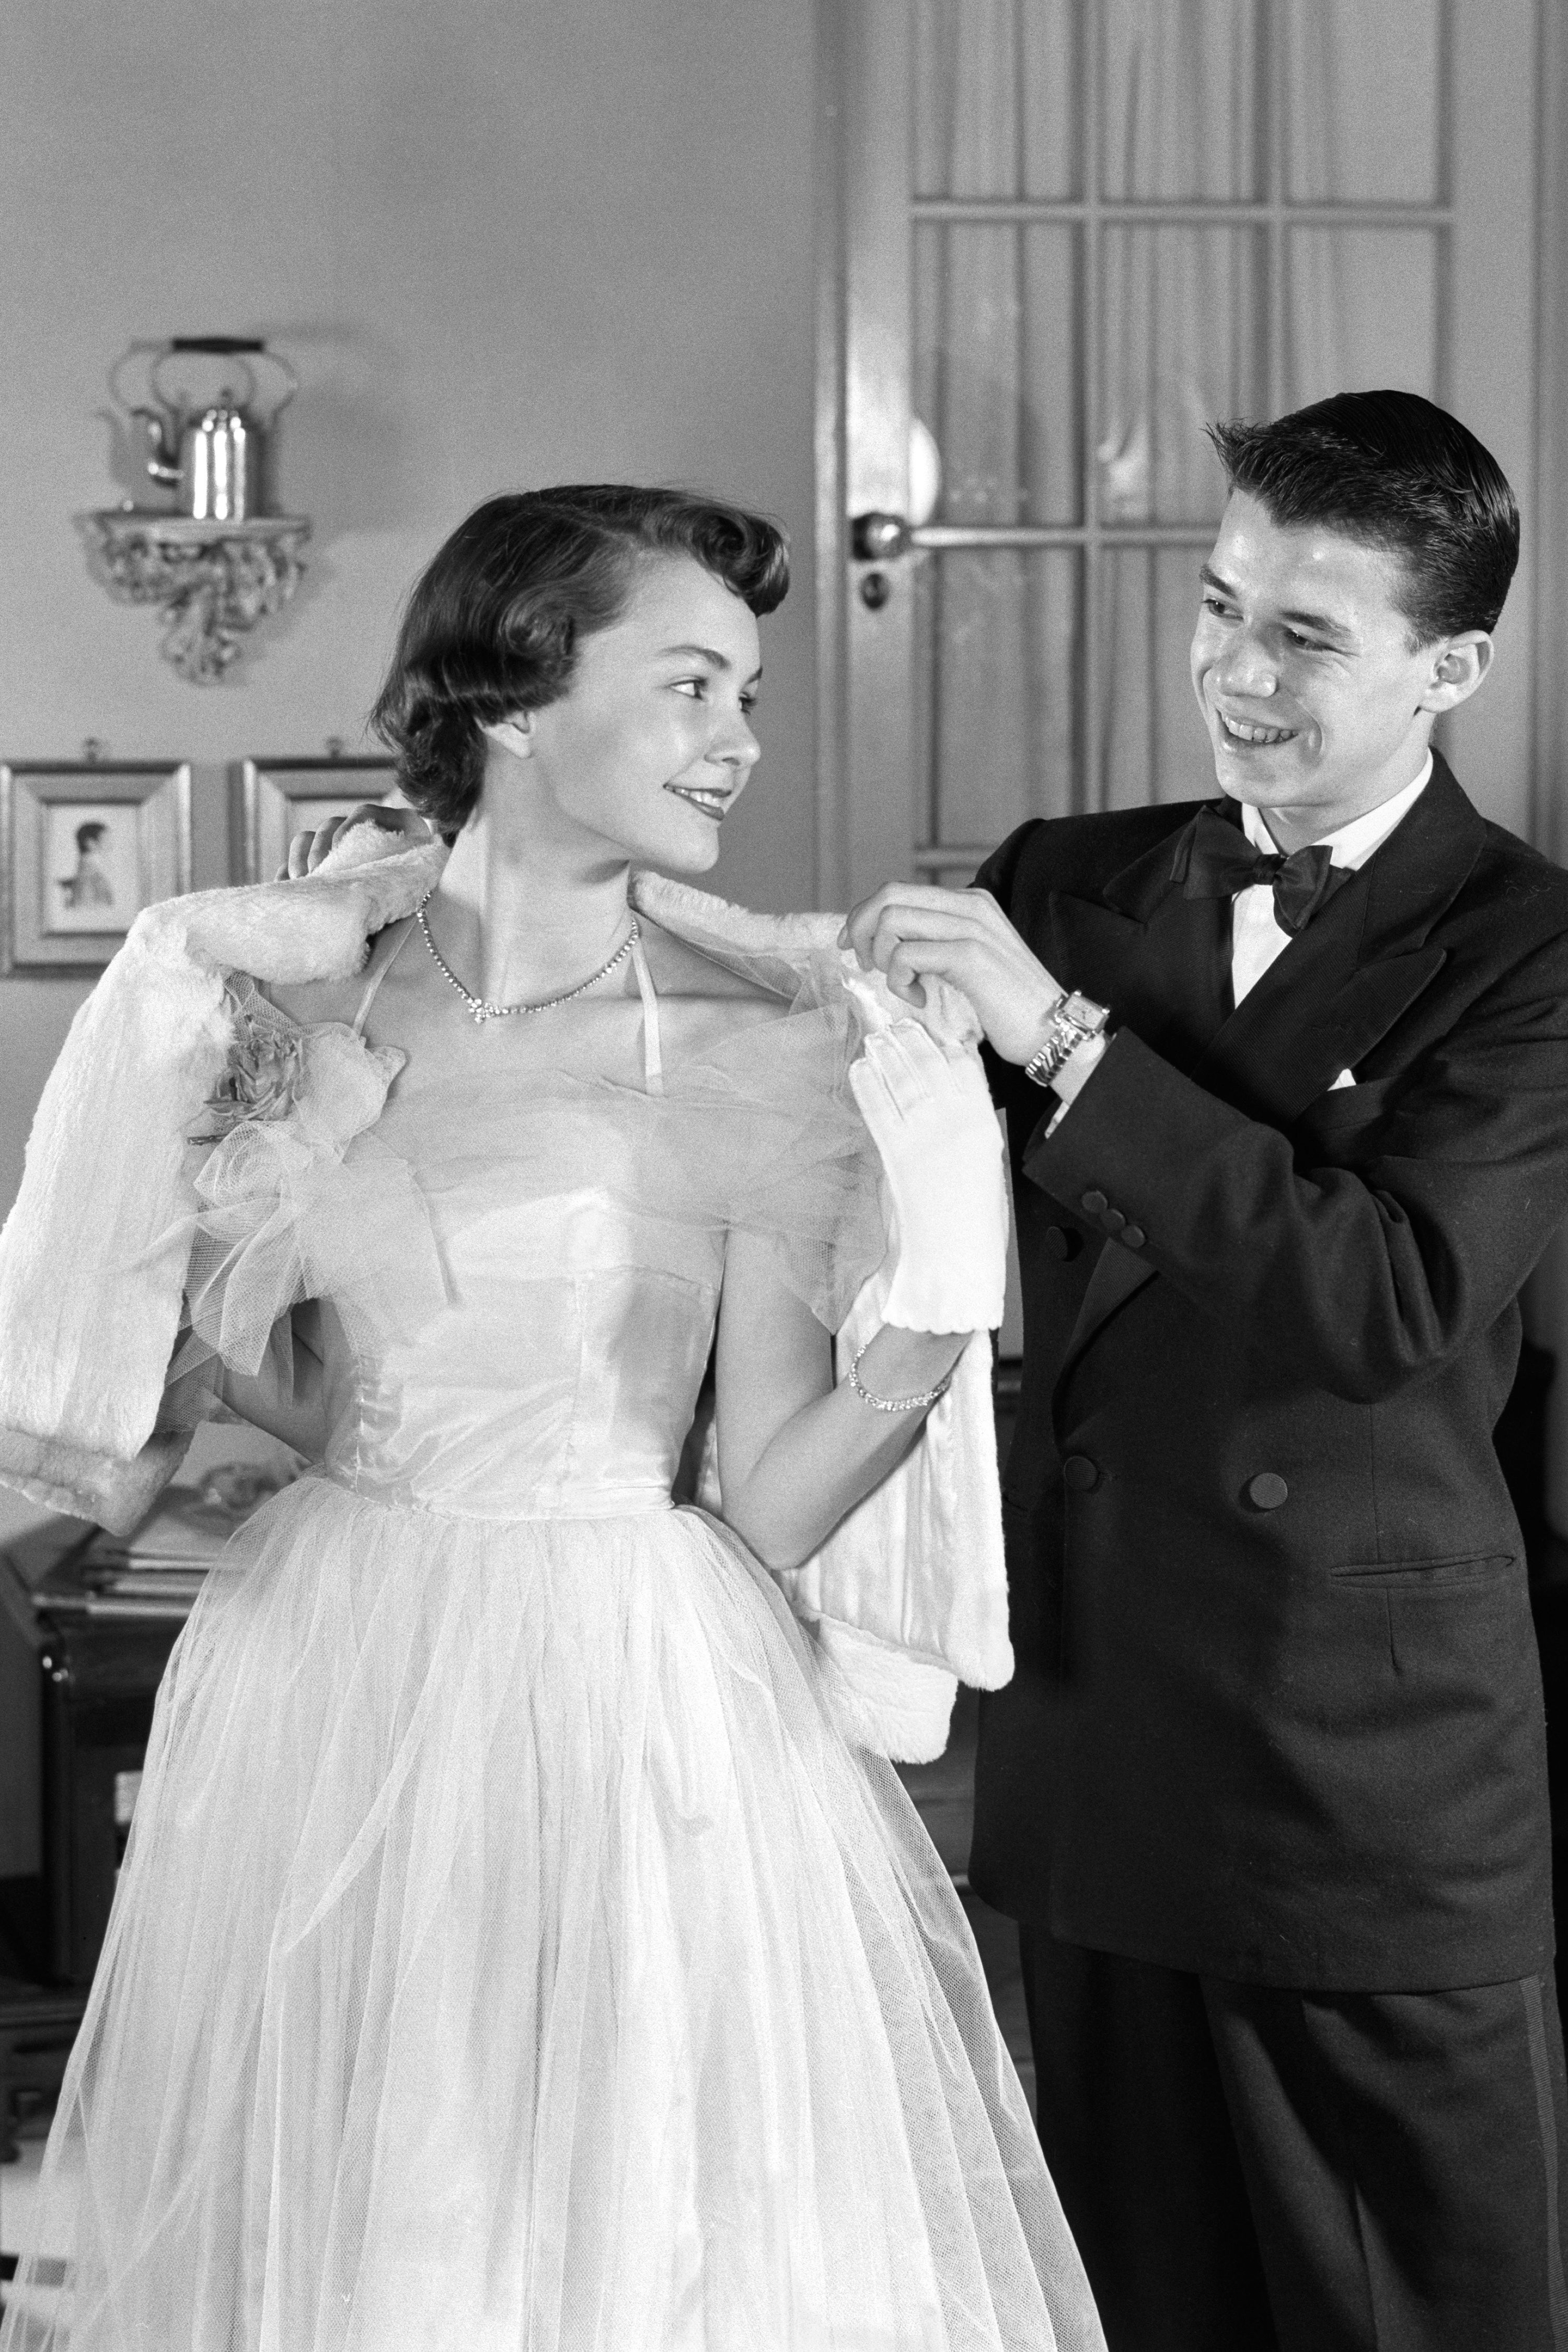 7 Old-School Dating Tips We Want to Bring Back